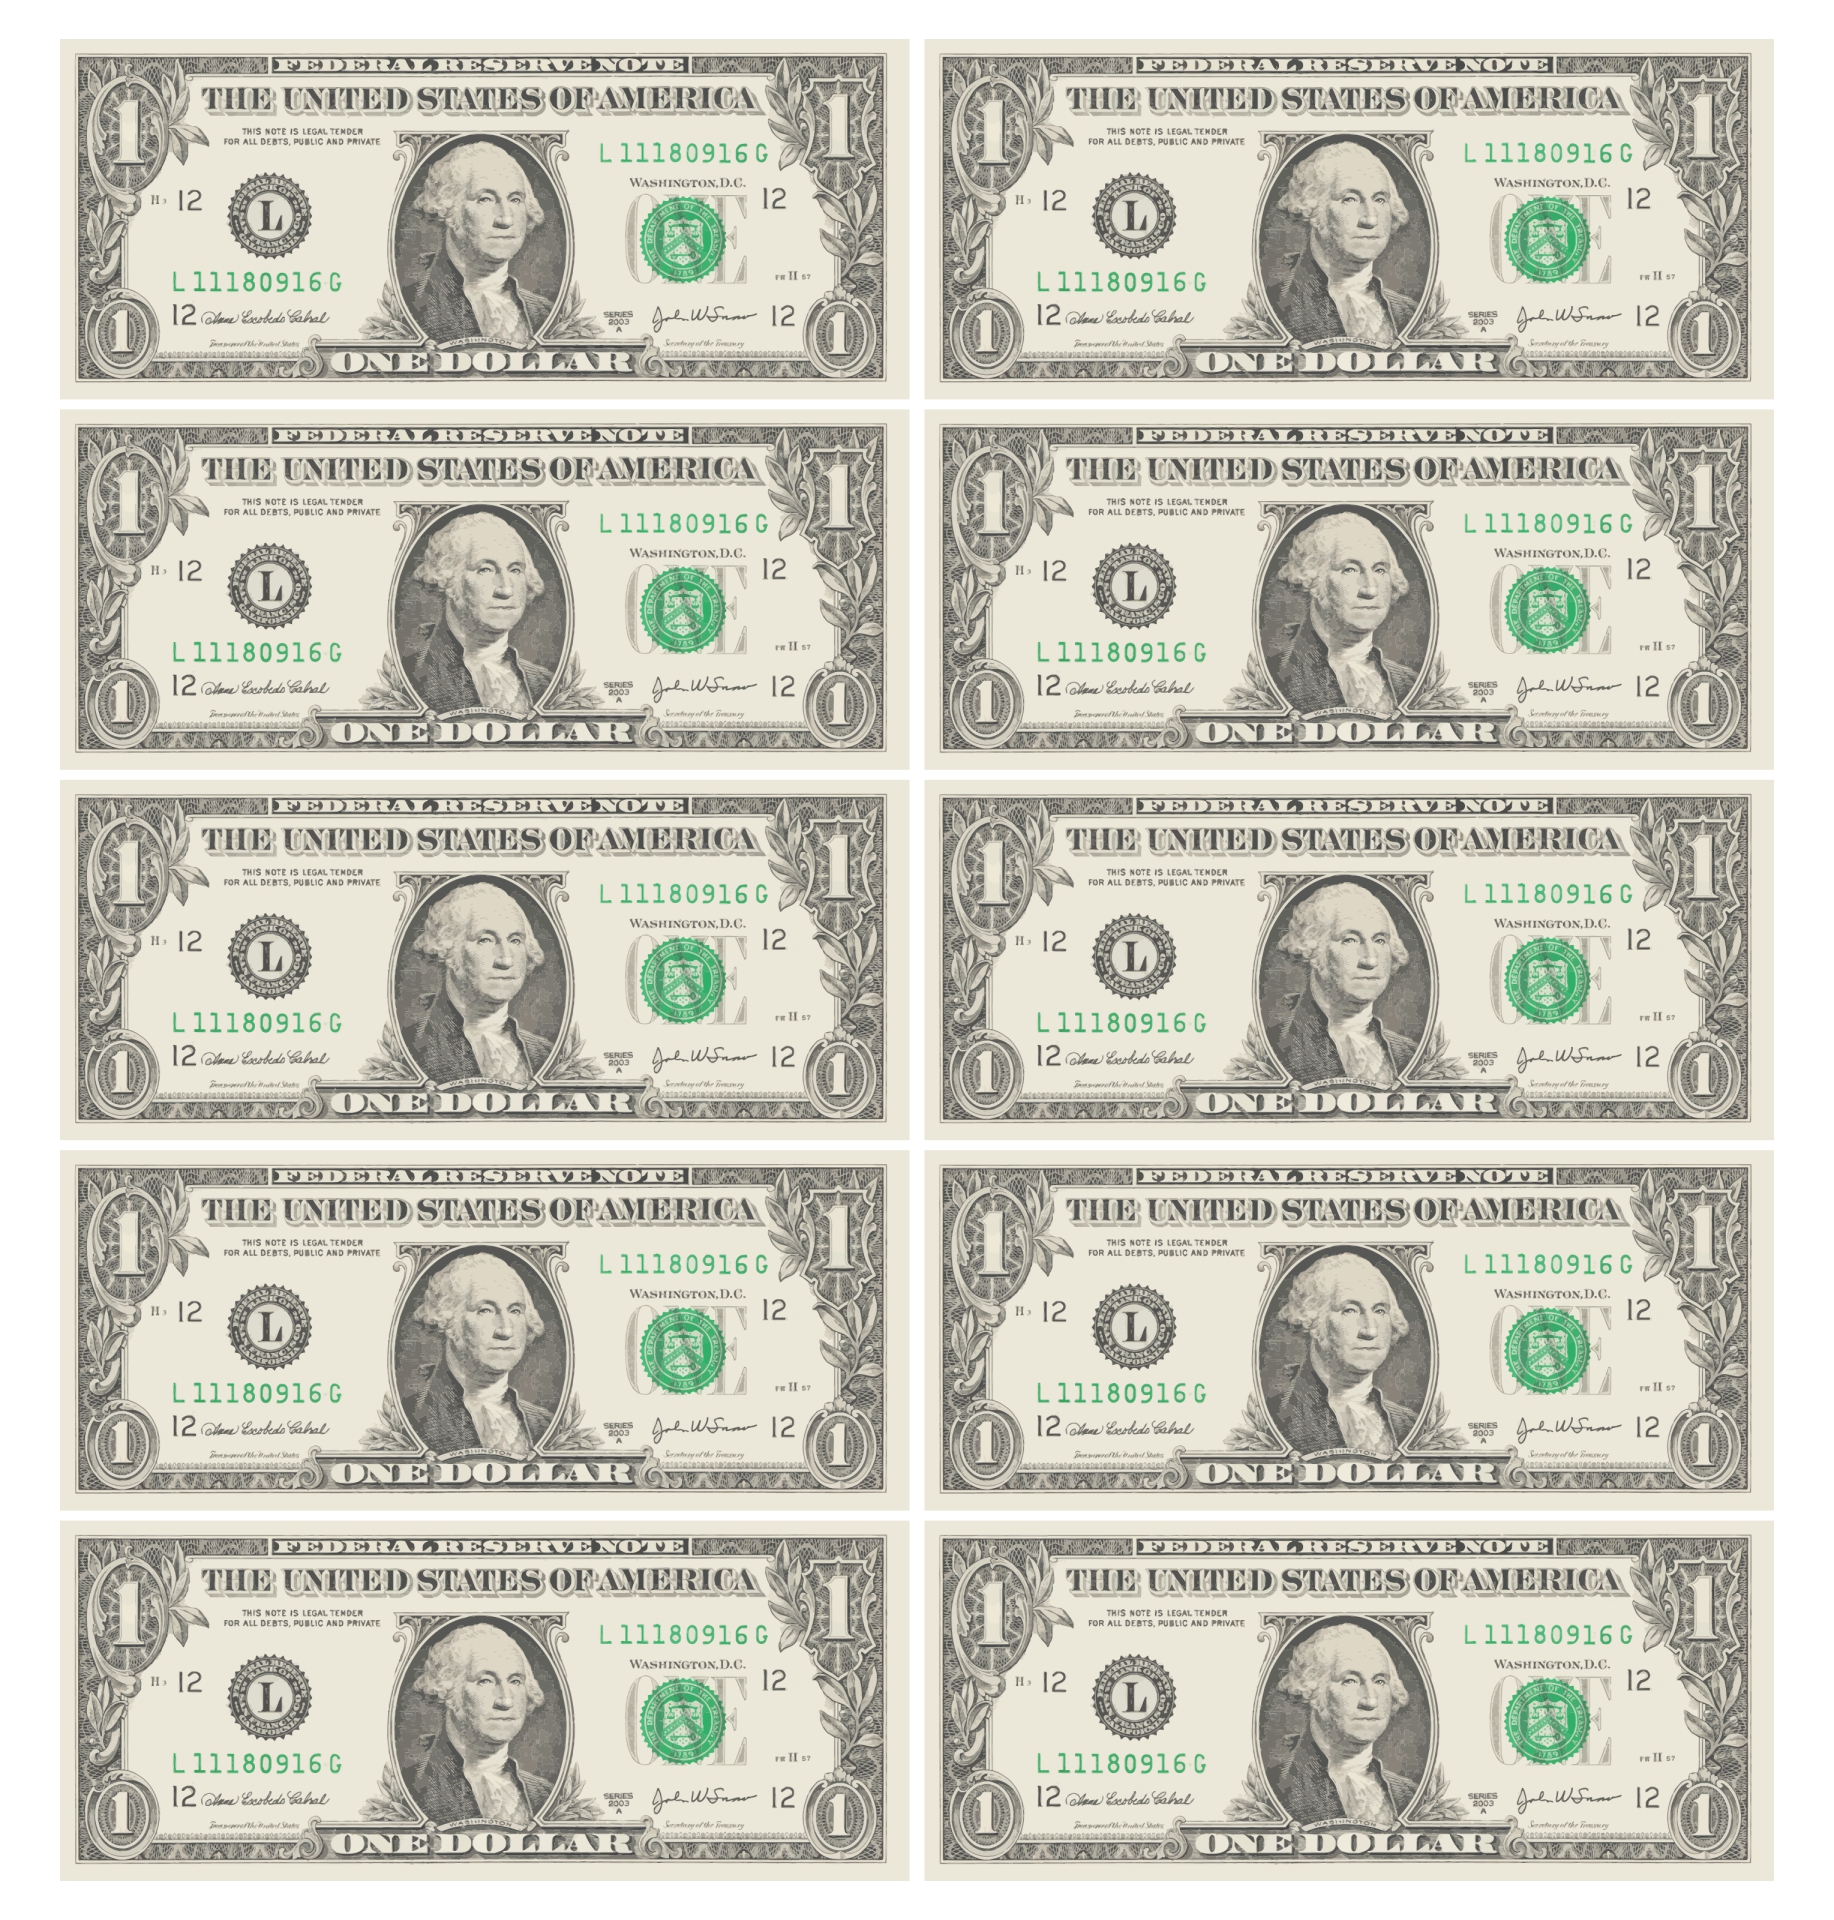 This is a picture of Revered Fake Play Money Printable